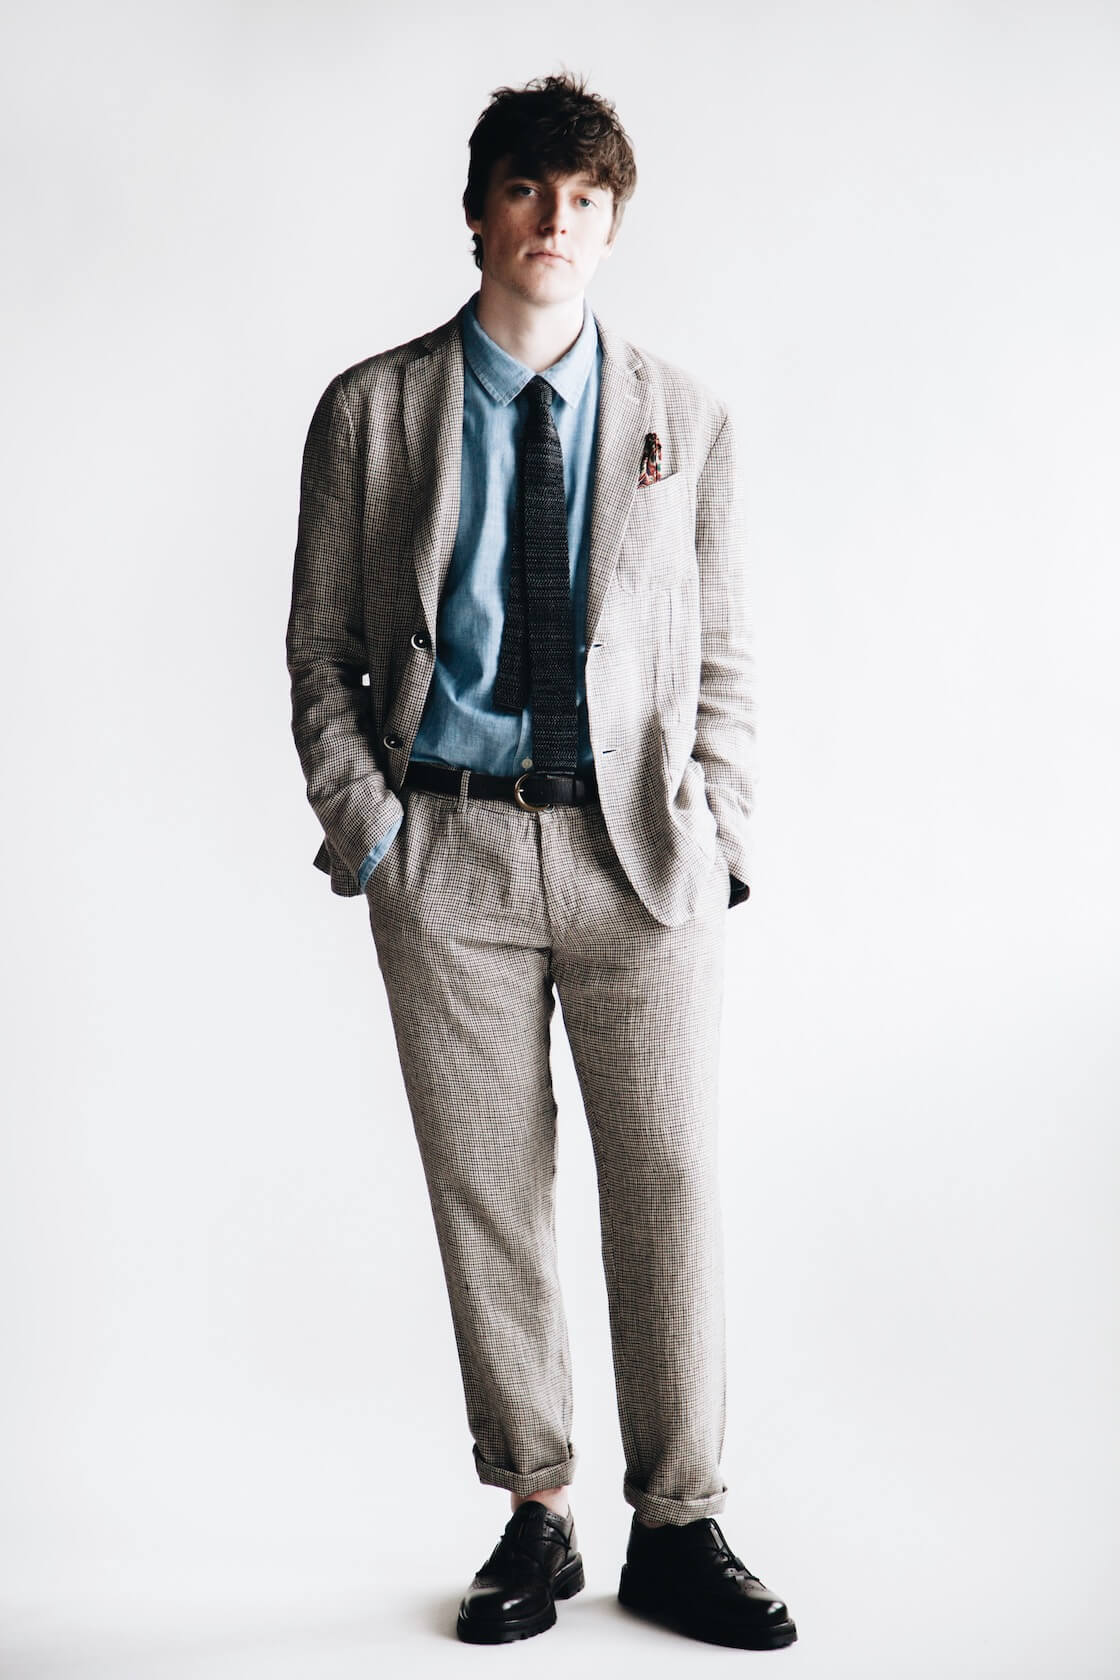 barena borgo jacket, canoe club x corridor blue chambray shirt, barena rionero trousers, beams plus knit tie and hender scheme code tip shoes on body